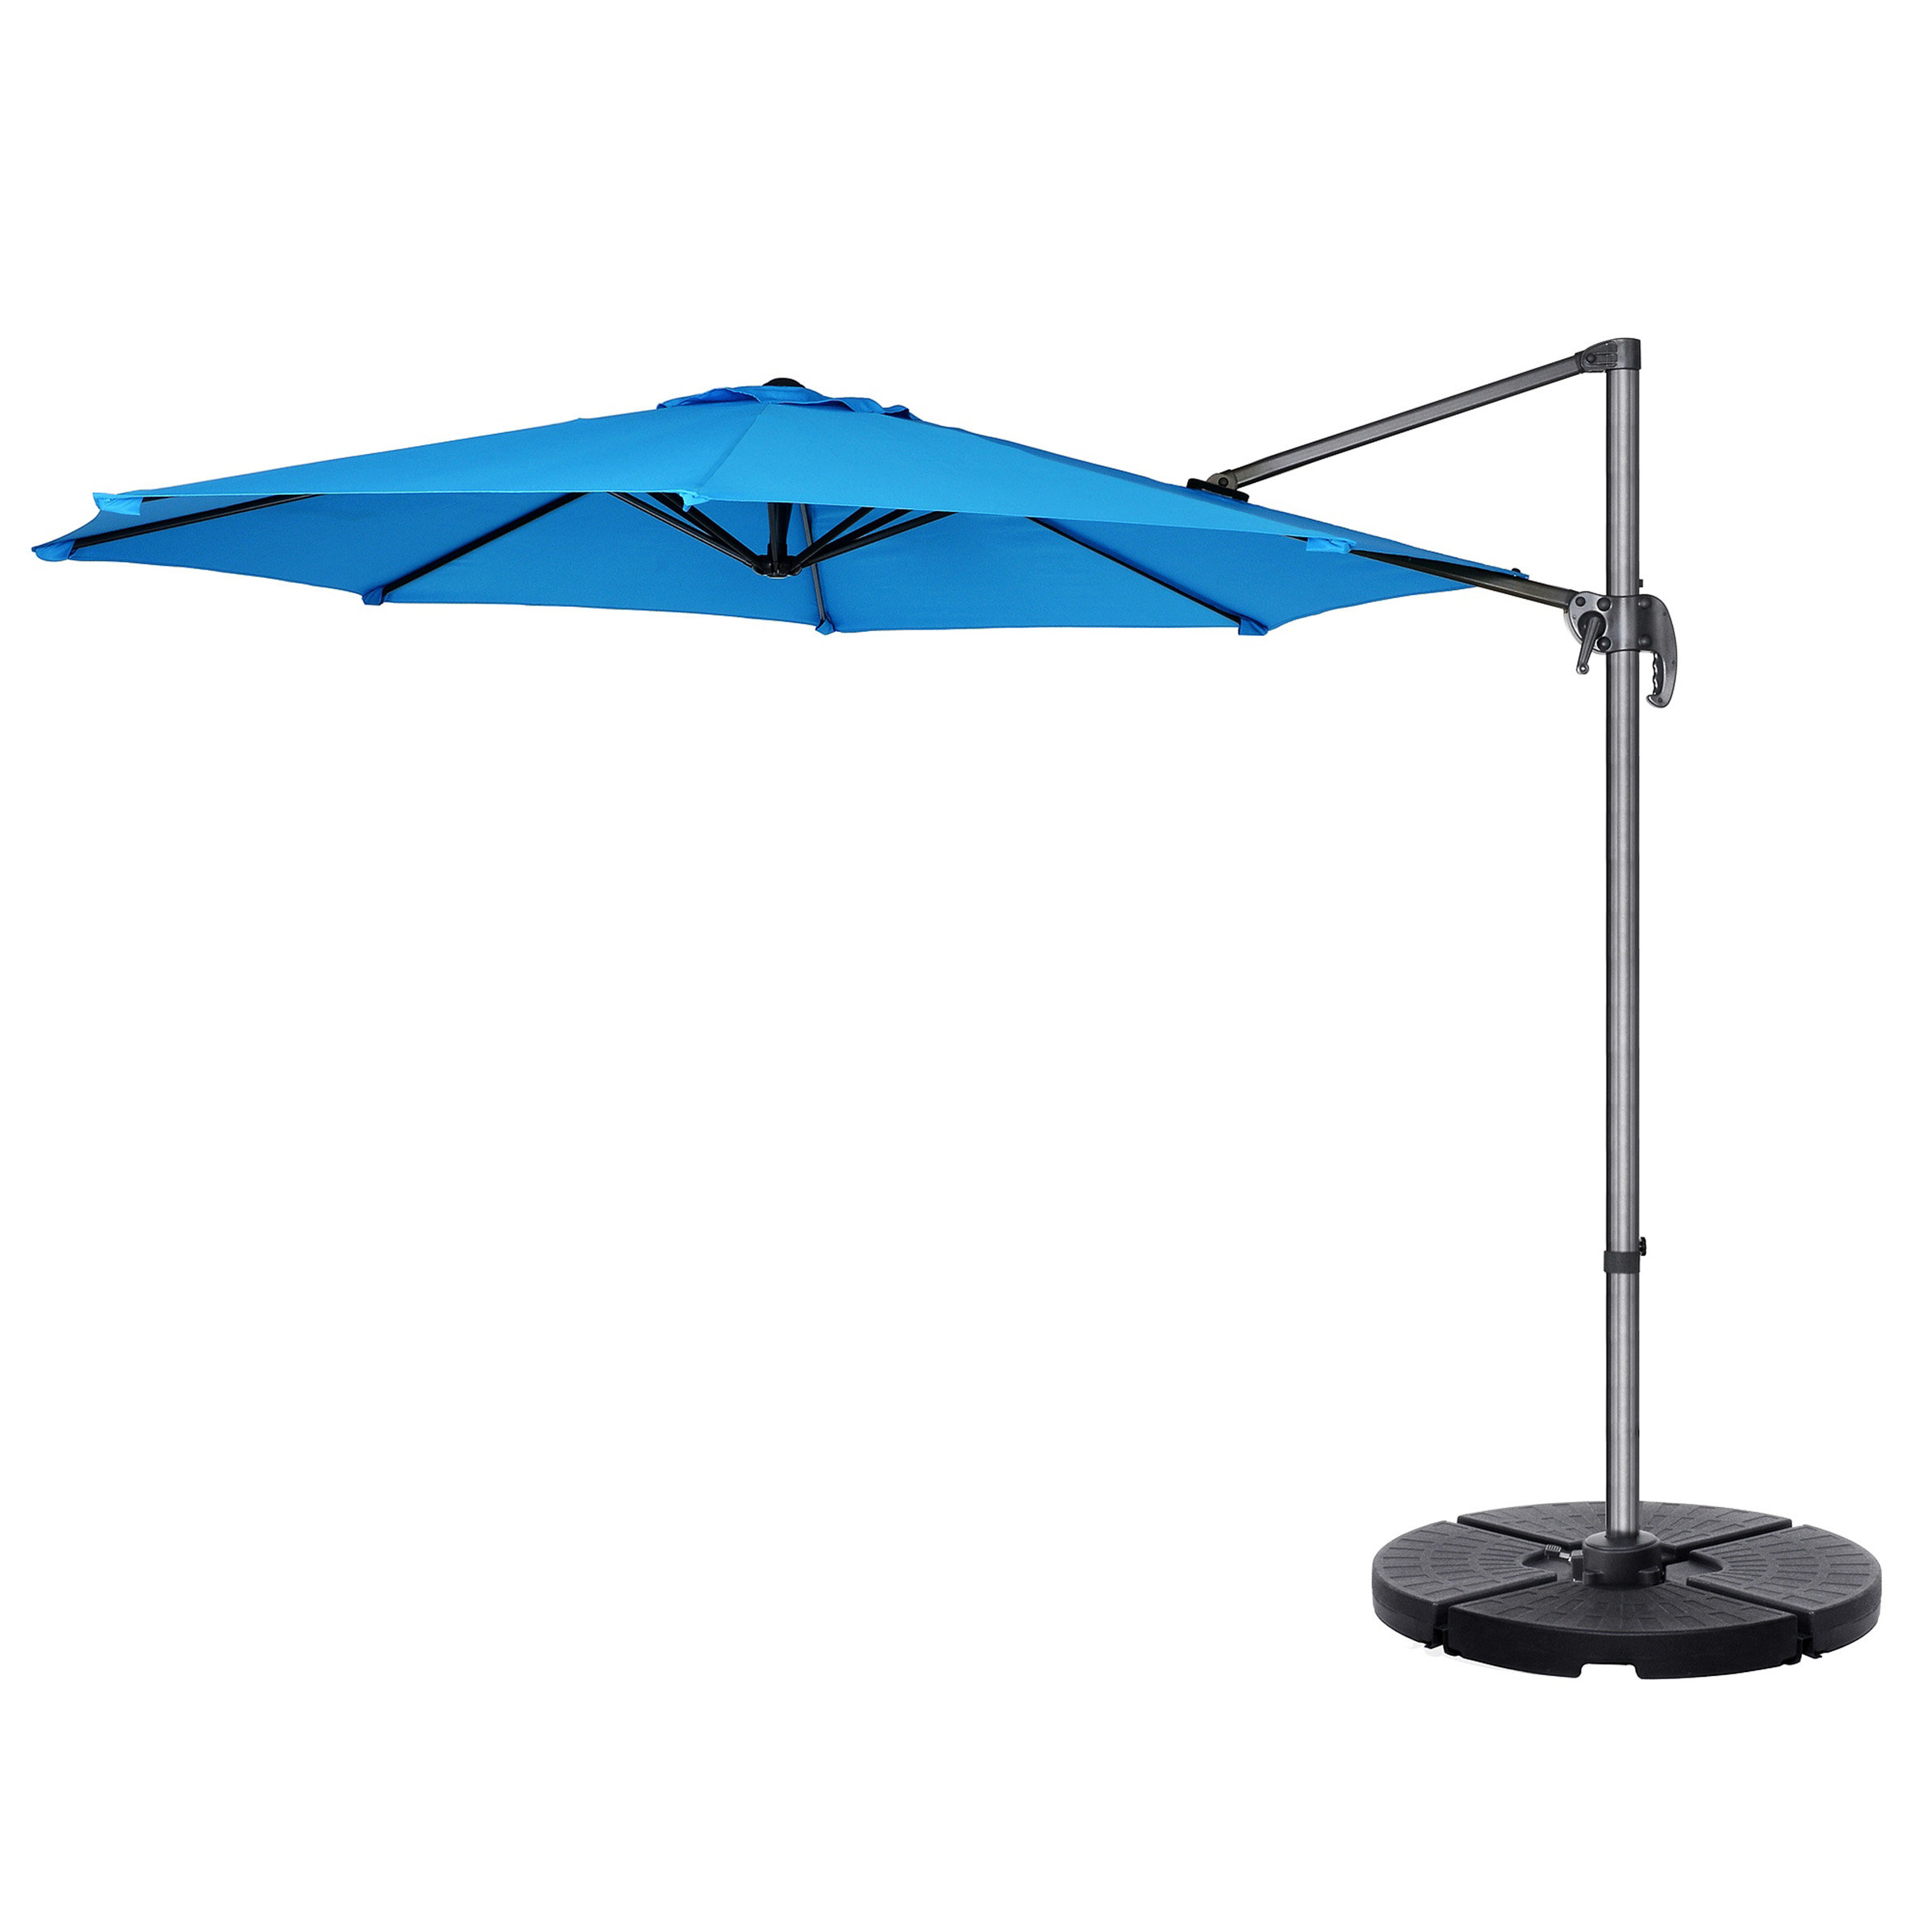 Iyanna Cantilever Umbrellas Intended For Widely Used Cockermouth Rotating 10' Cantilever Umbrella (View 8 of 20)